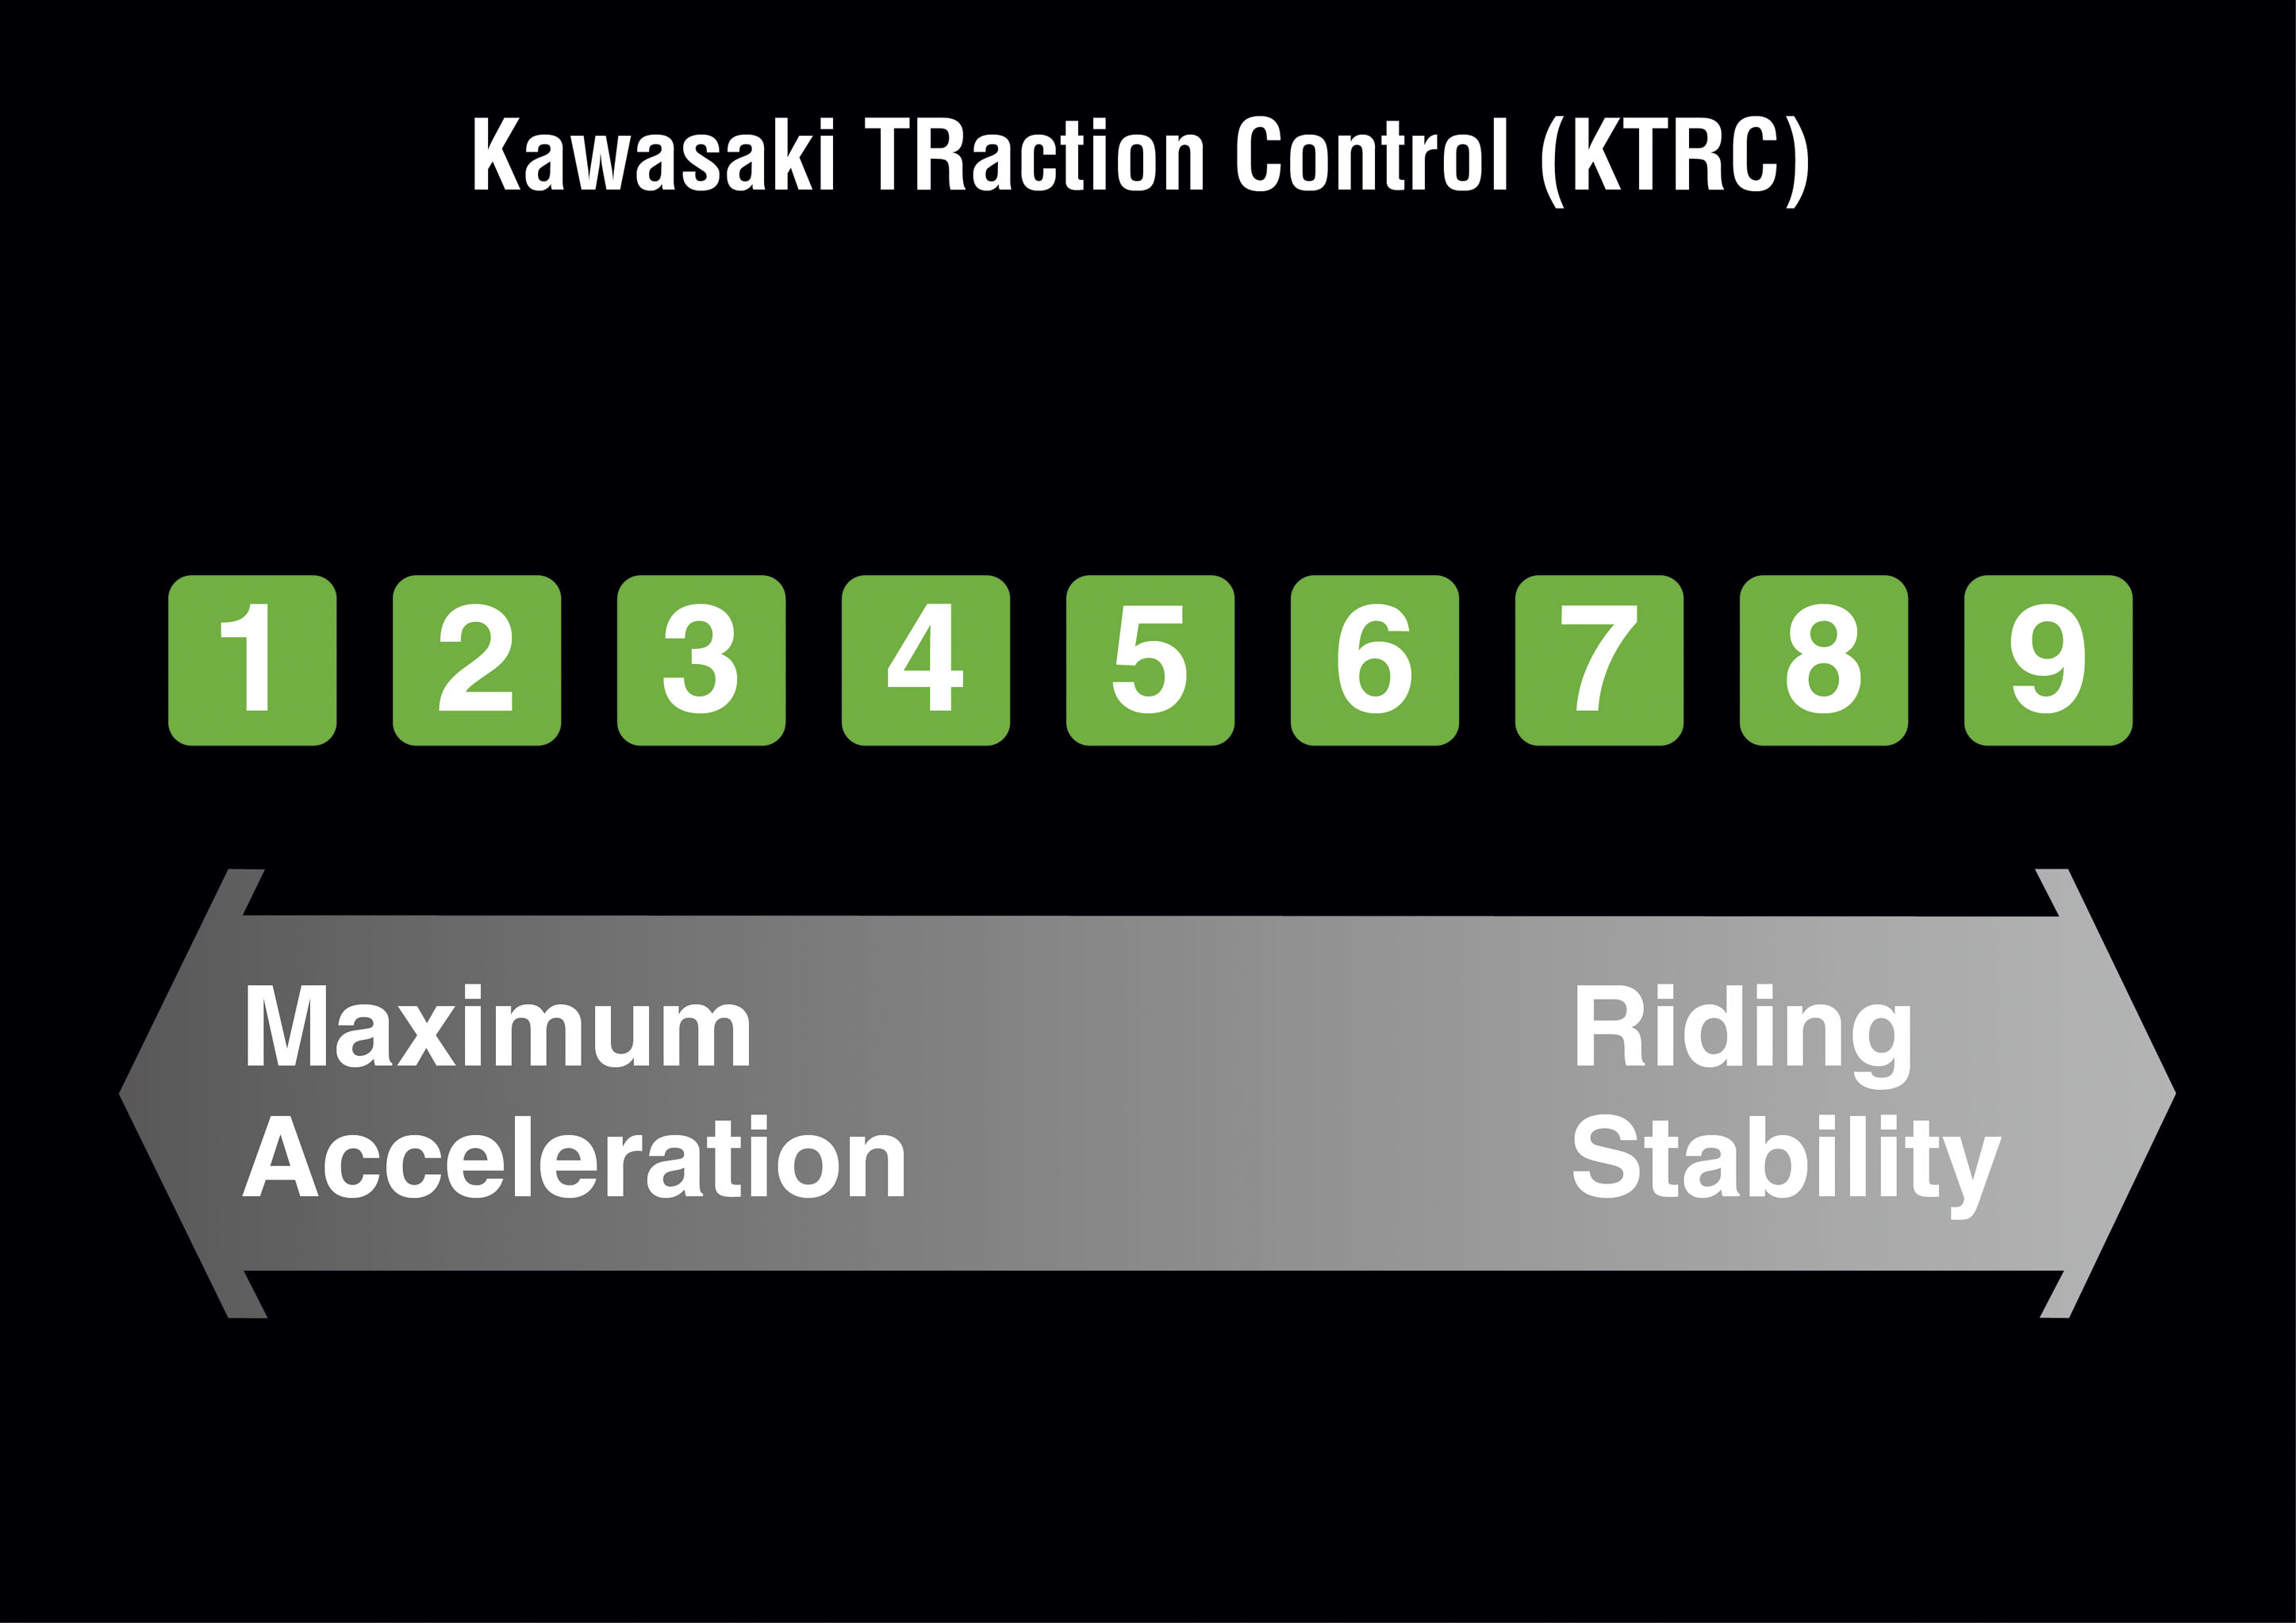 One to 9 maximum acceleration vs riding stability